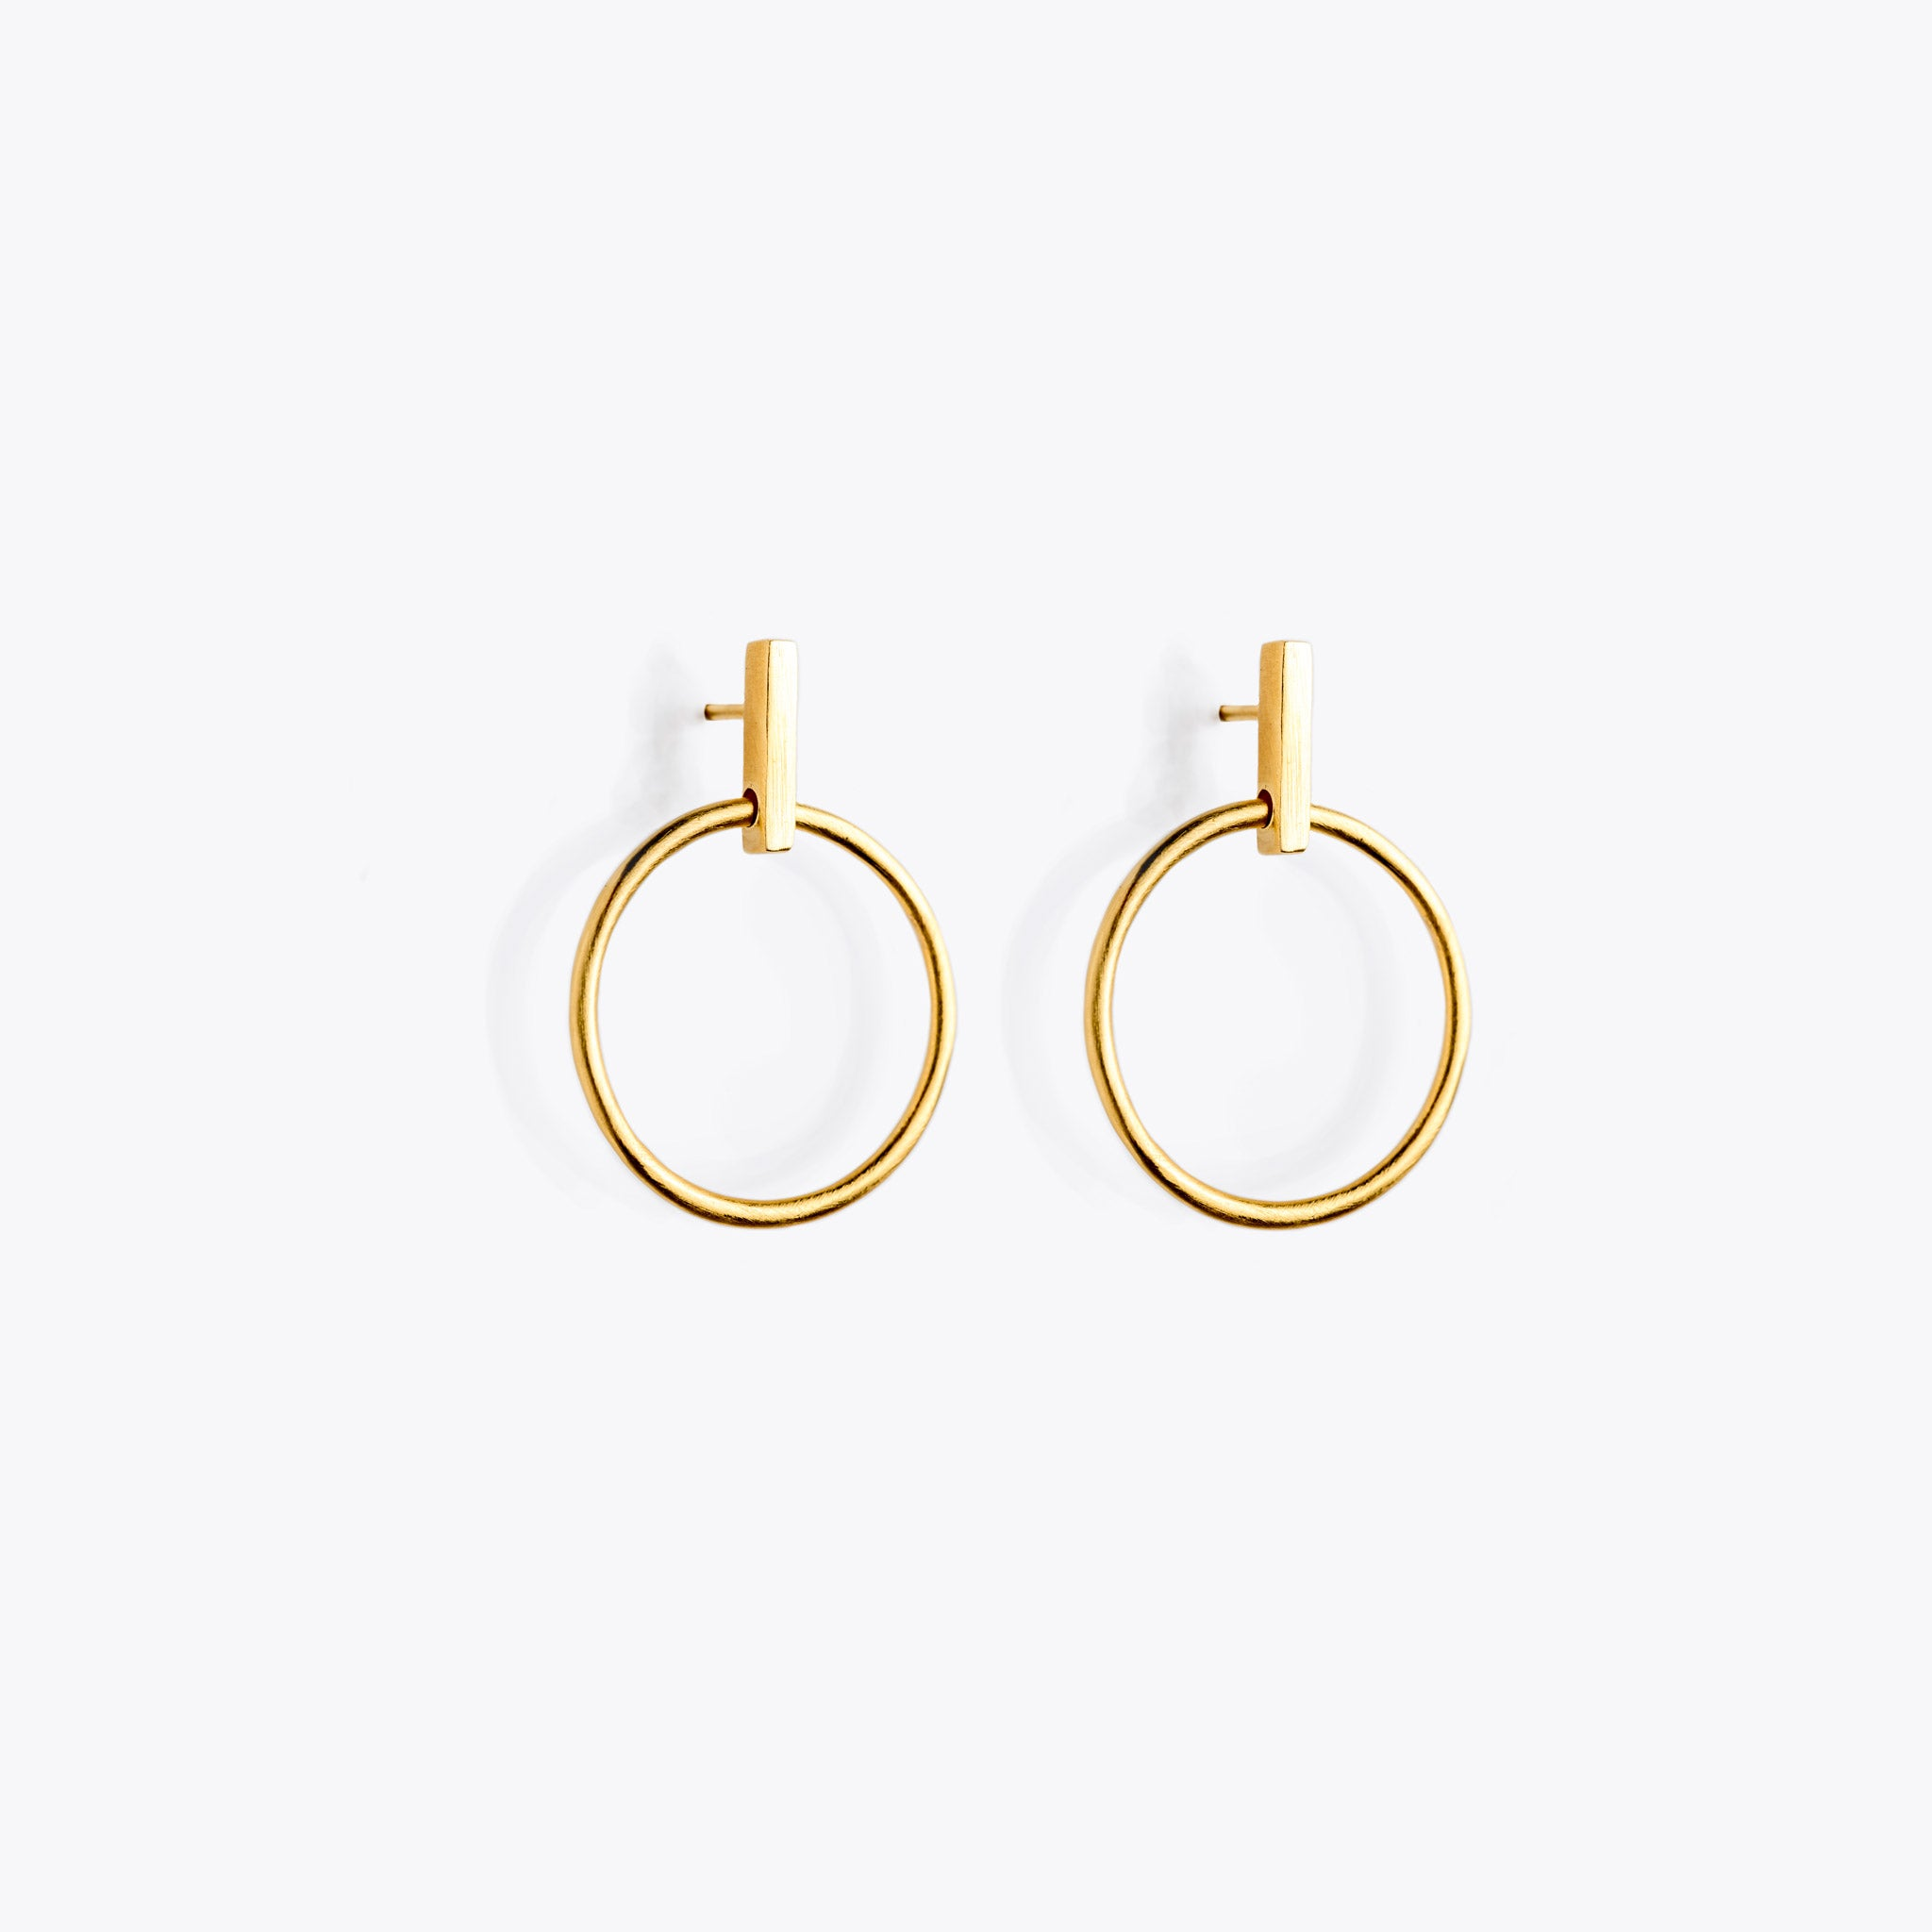 Wanderlust Life Ethically Handmade jewellery made in the UK. Minimalist gold and fine cord jewellery. solar gold halo earring